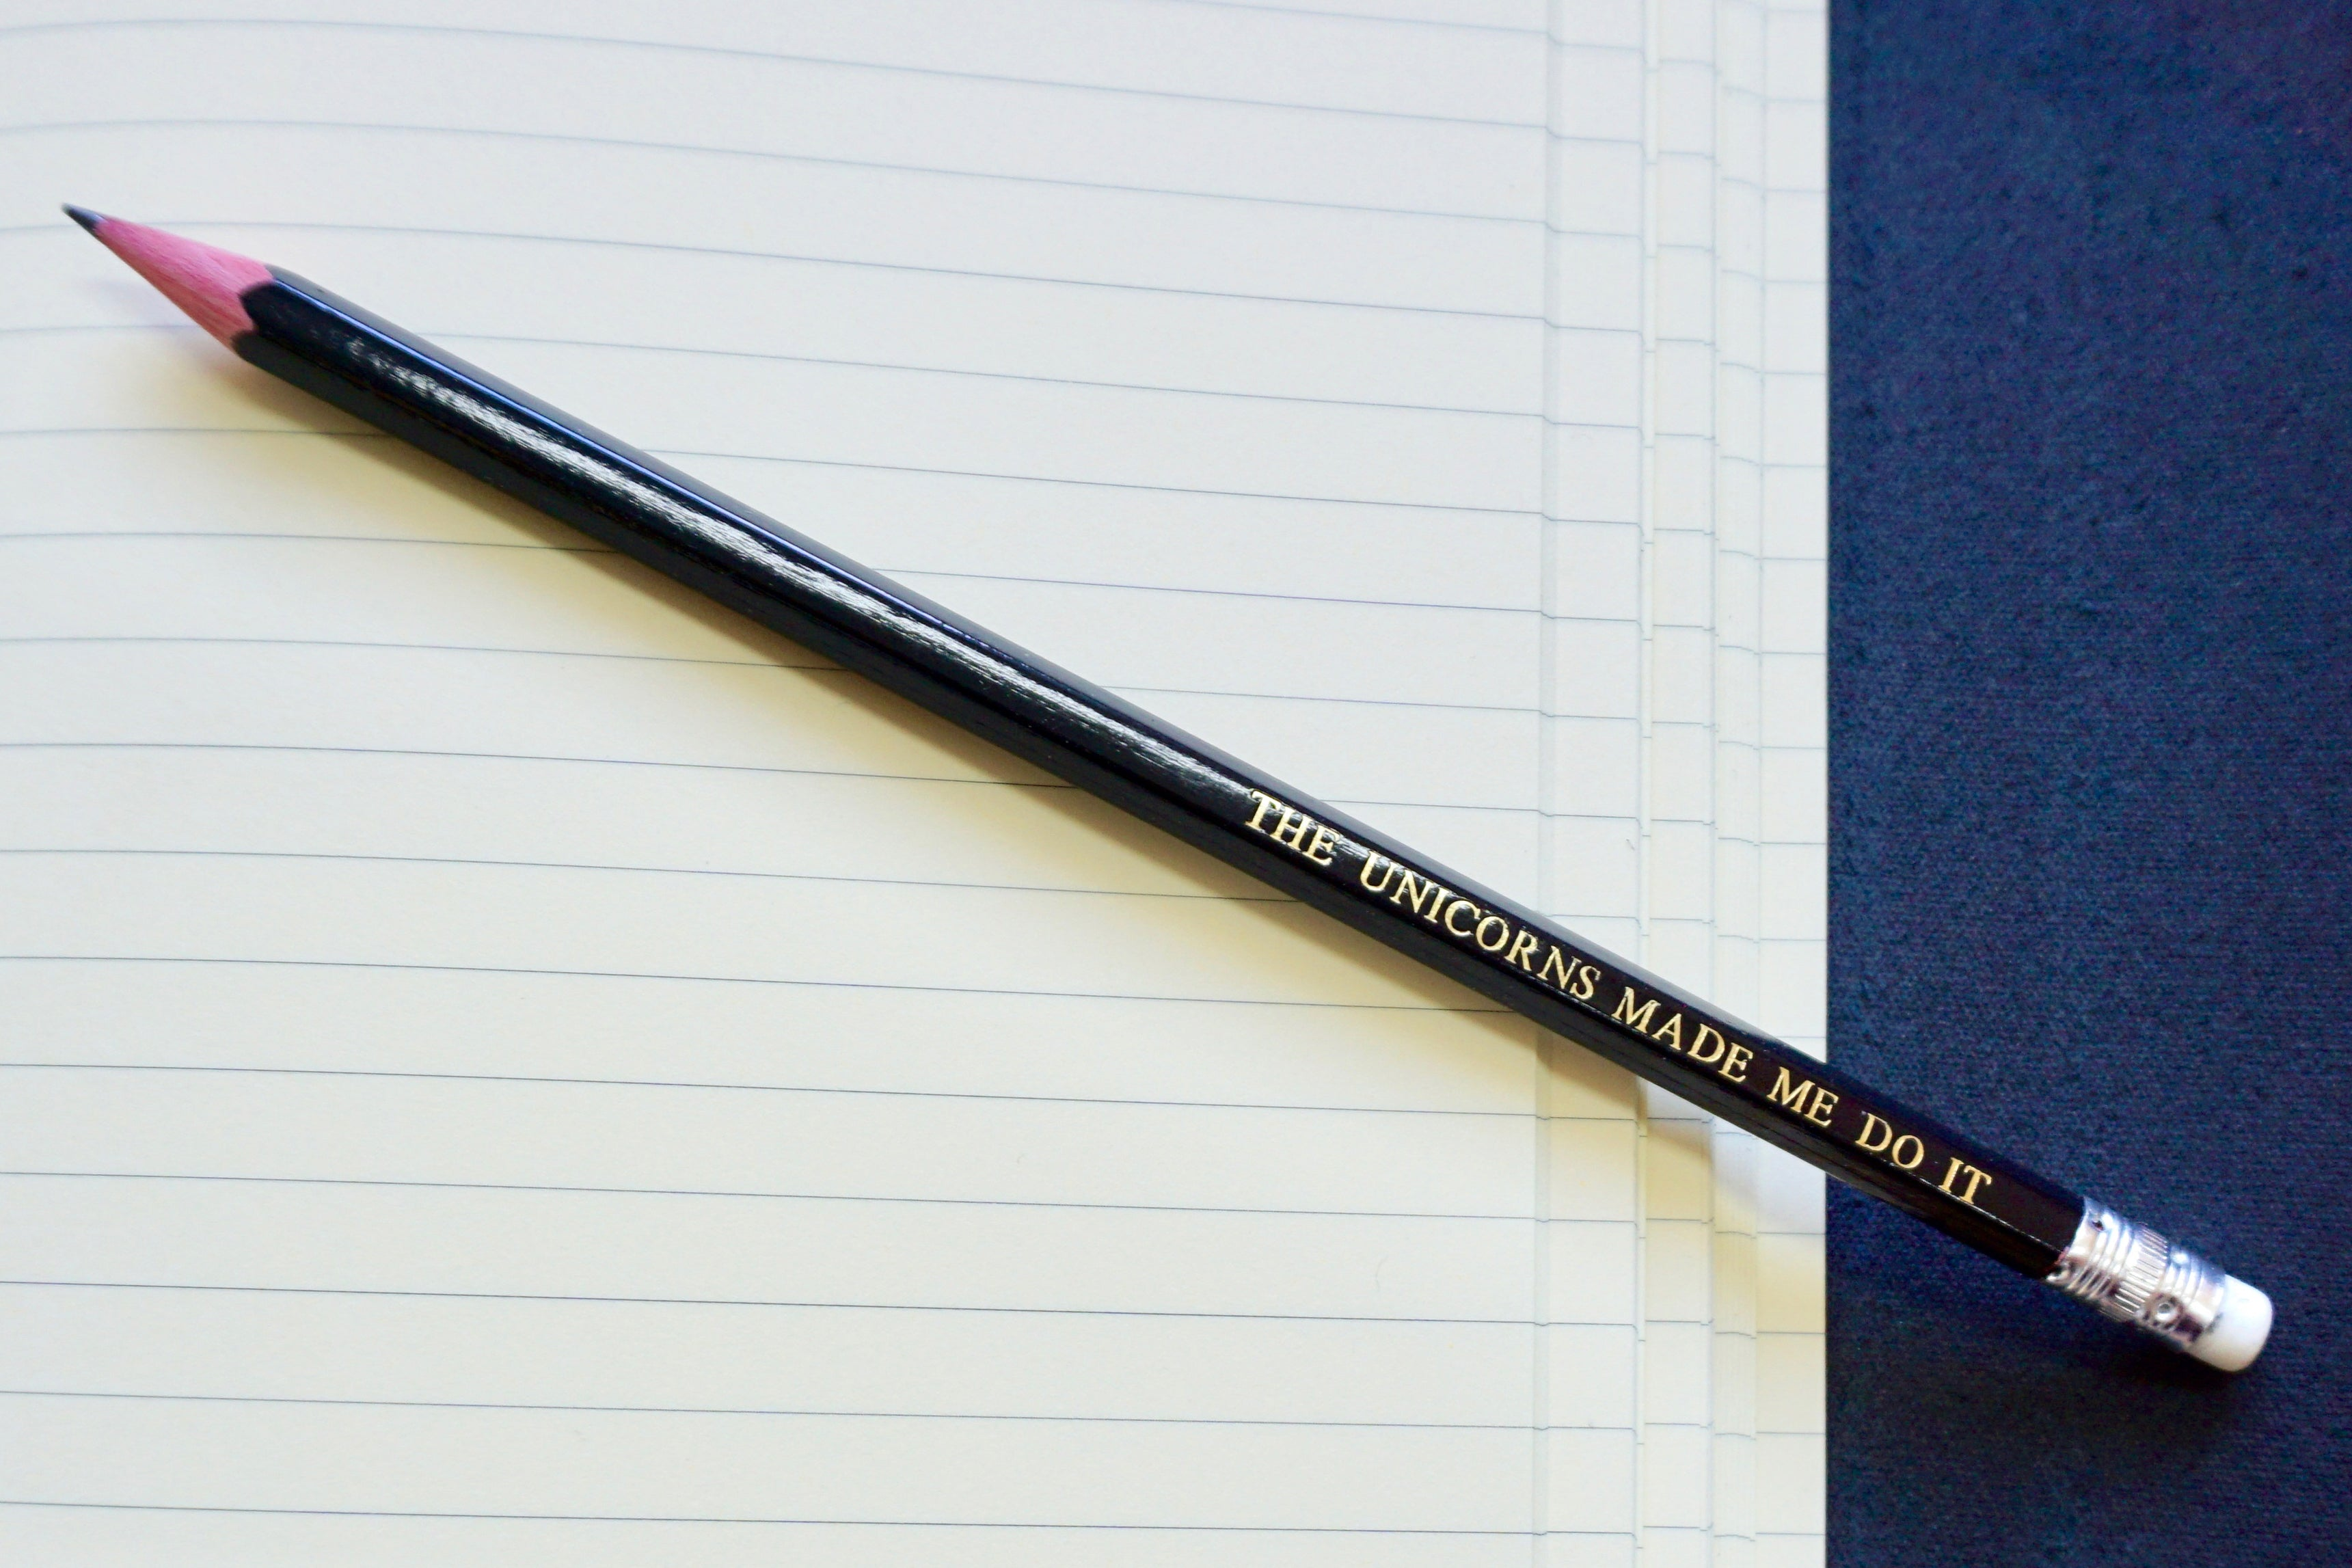 Custom pencils from Bookshell, 'The unicorns made me do it'